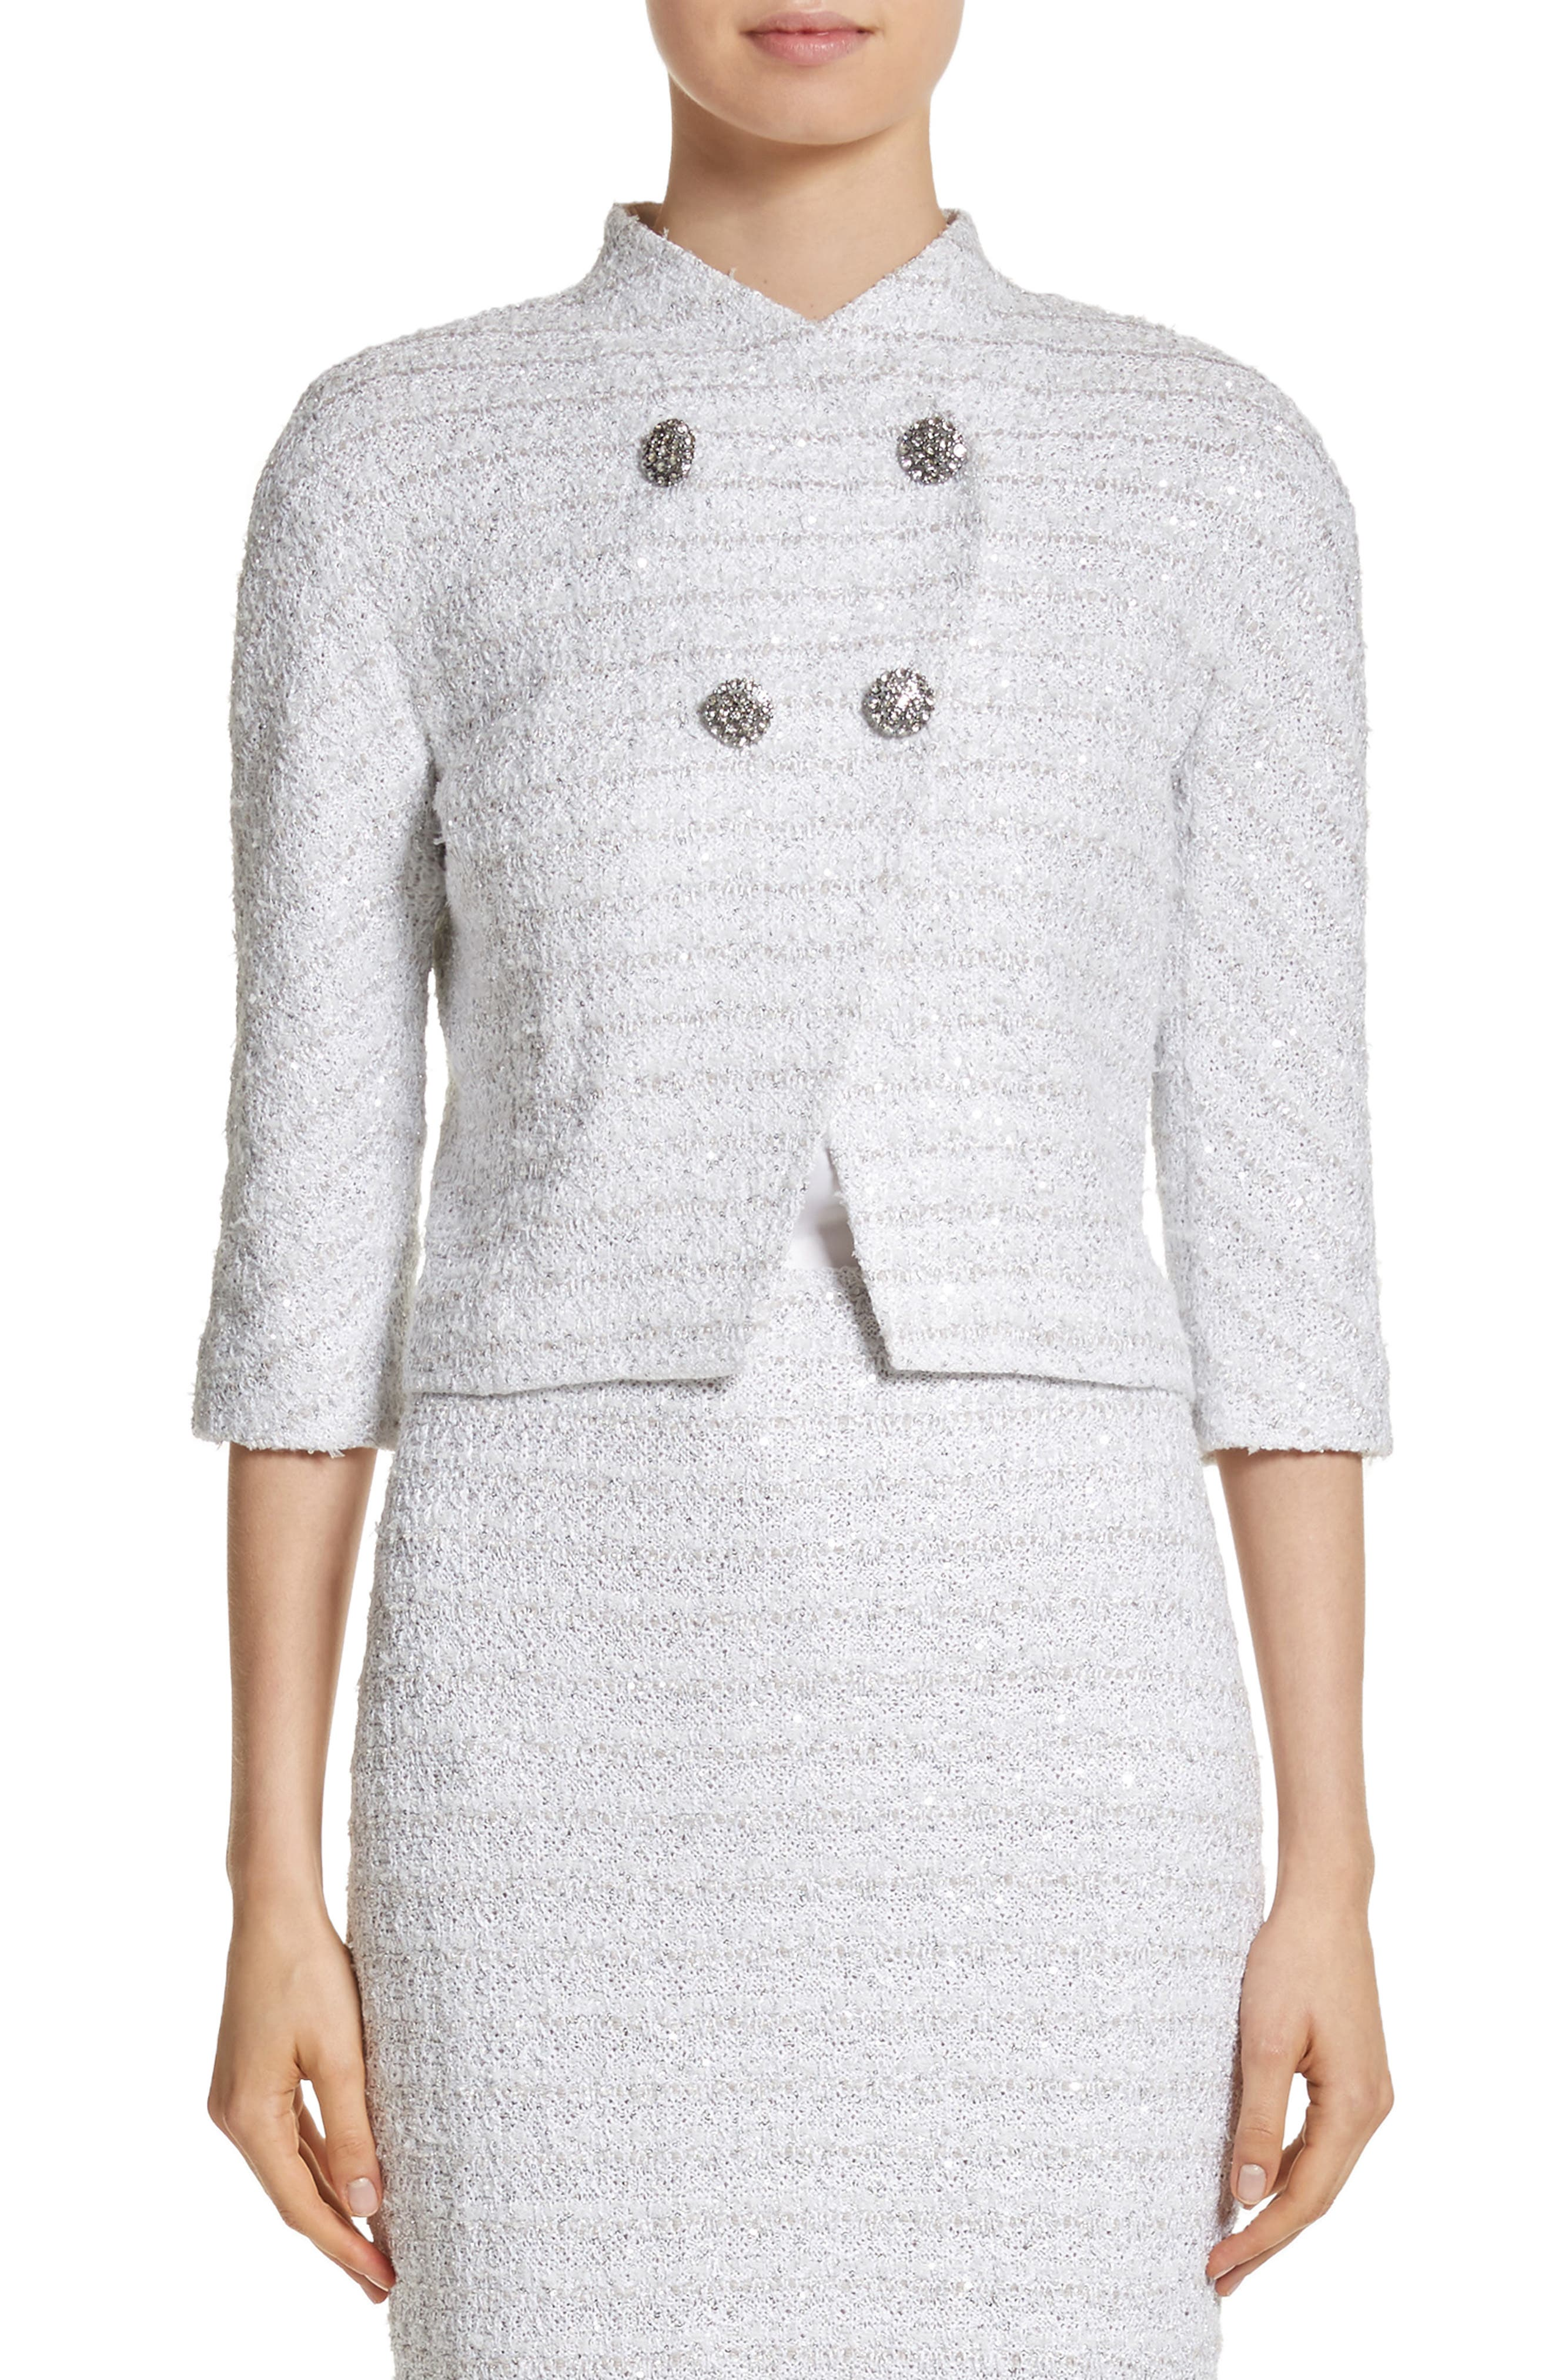 Frosted Metallic Tweed Jacket,                             Main thumbnail 1, color,